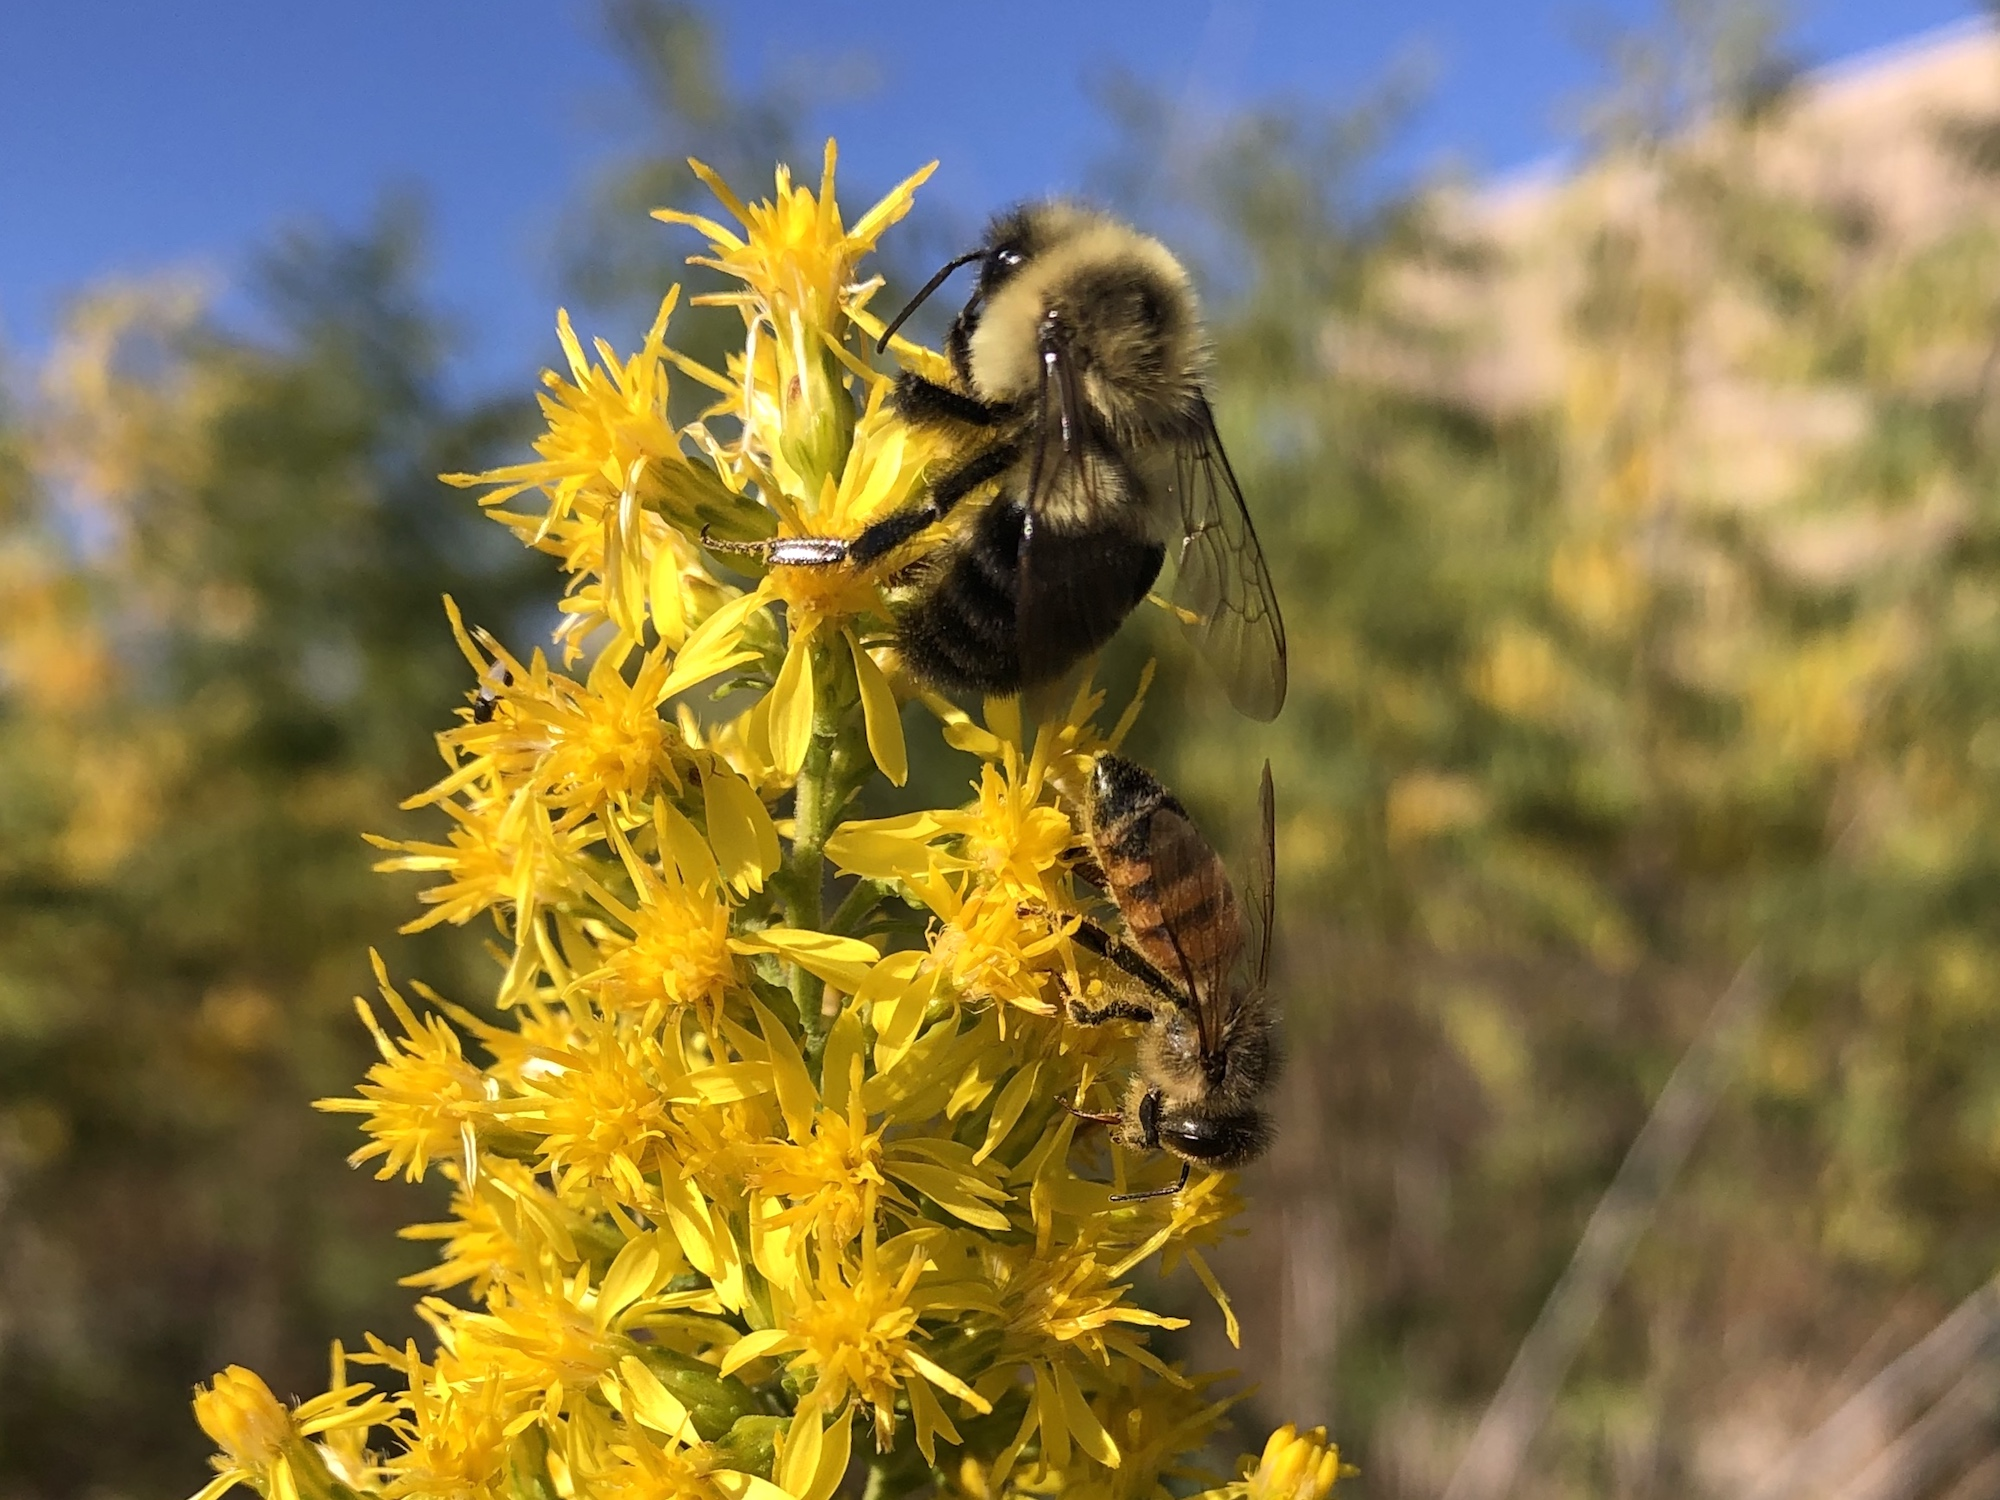 Bumblebee and Honeybee on Showy Goldenrod on October 7, 2020.